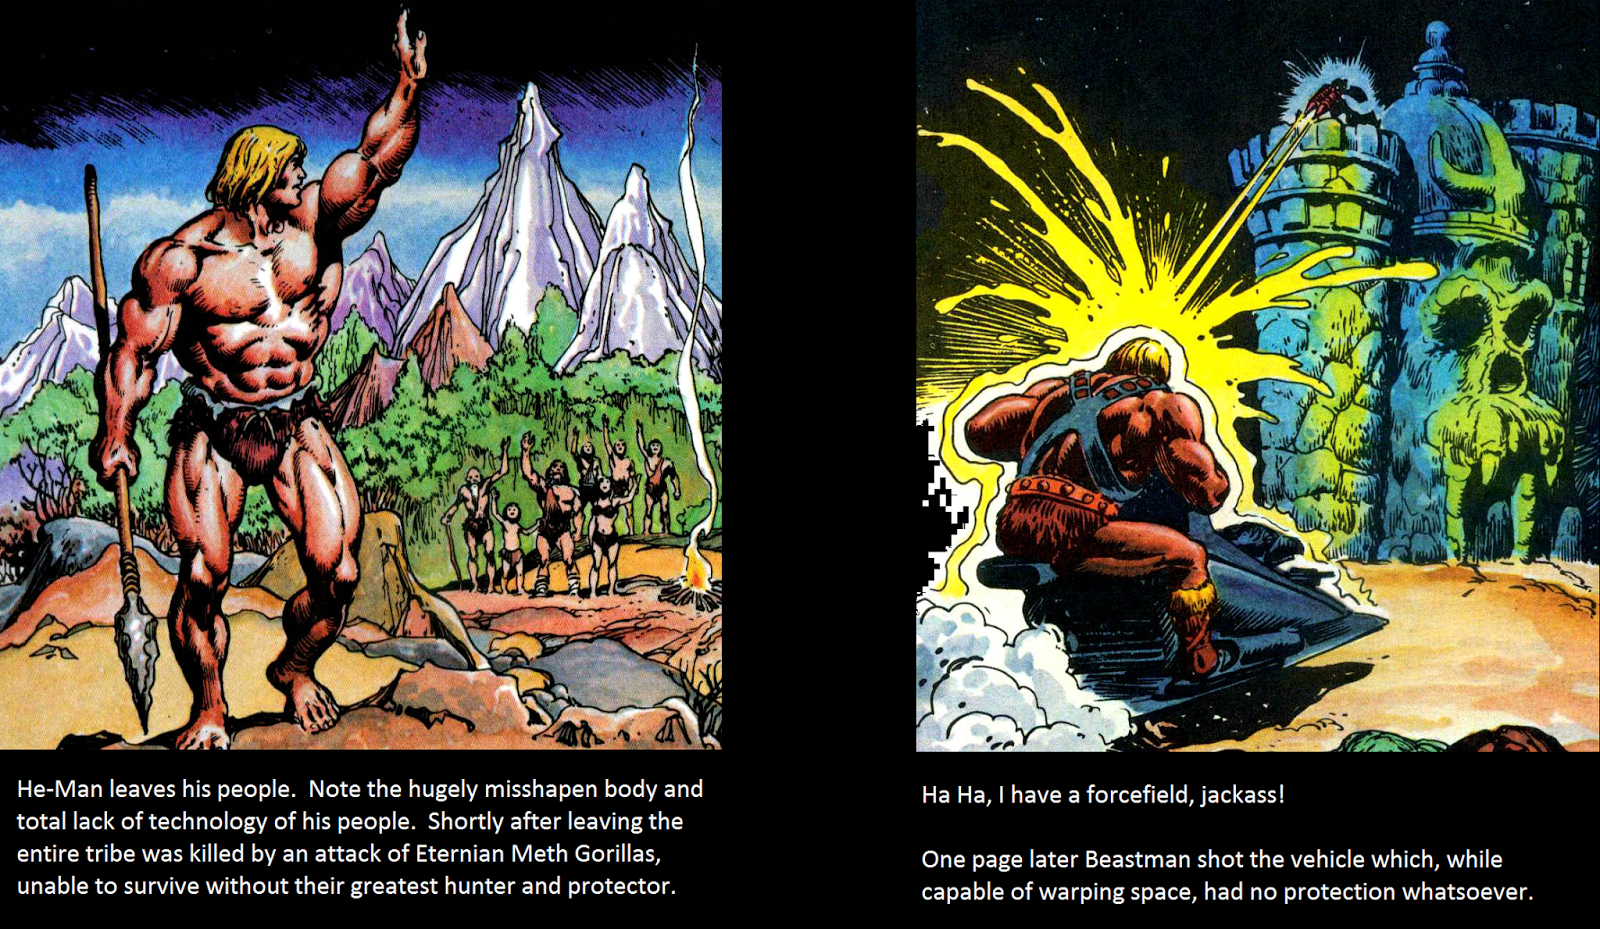 I am not showing it here but in that first comic he man was a bit of a jerkass as well given to sarcasm and roid rage